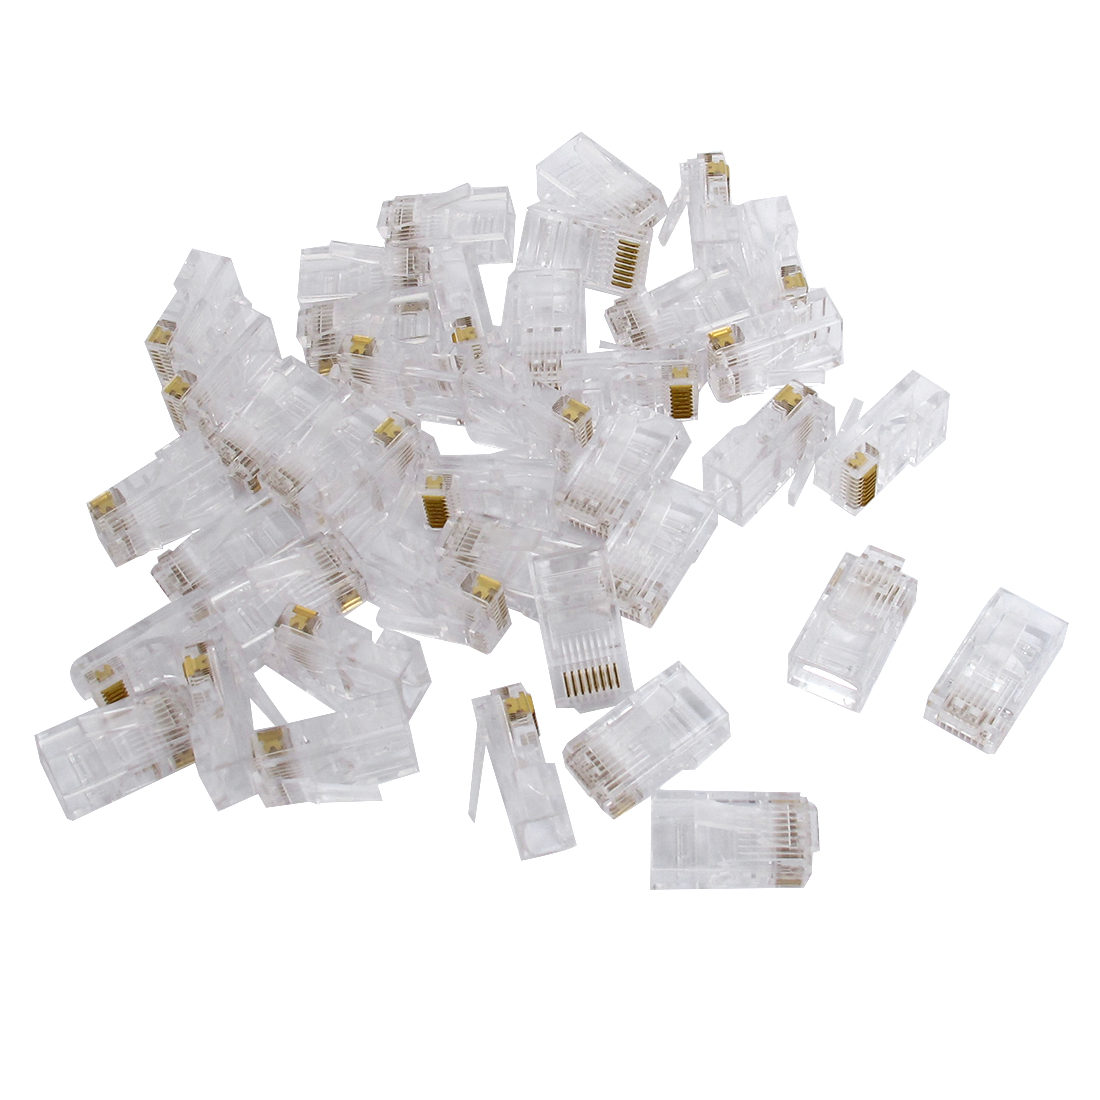 40 Pcs RJ45 8P8C Modular Plug Network Crimp Adapter Ethernet Cable Wire Connector End